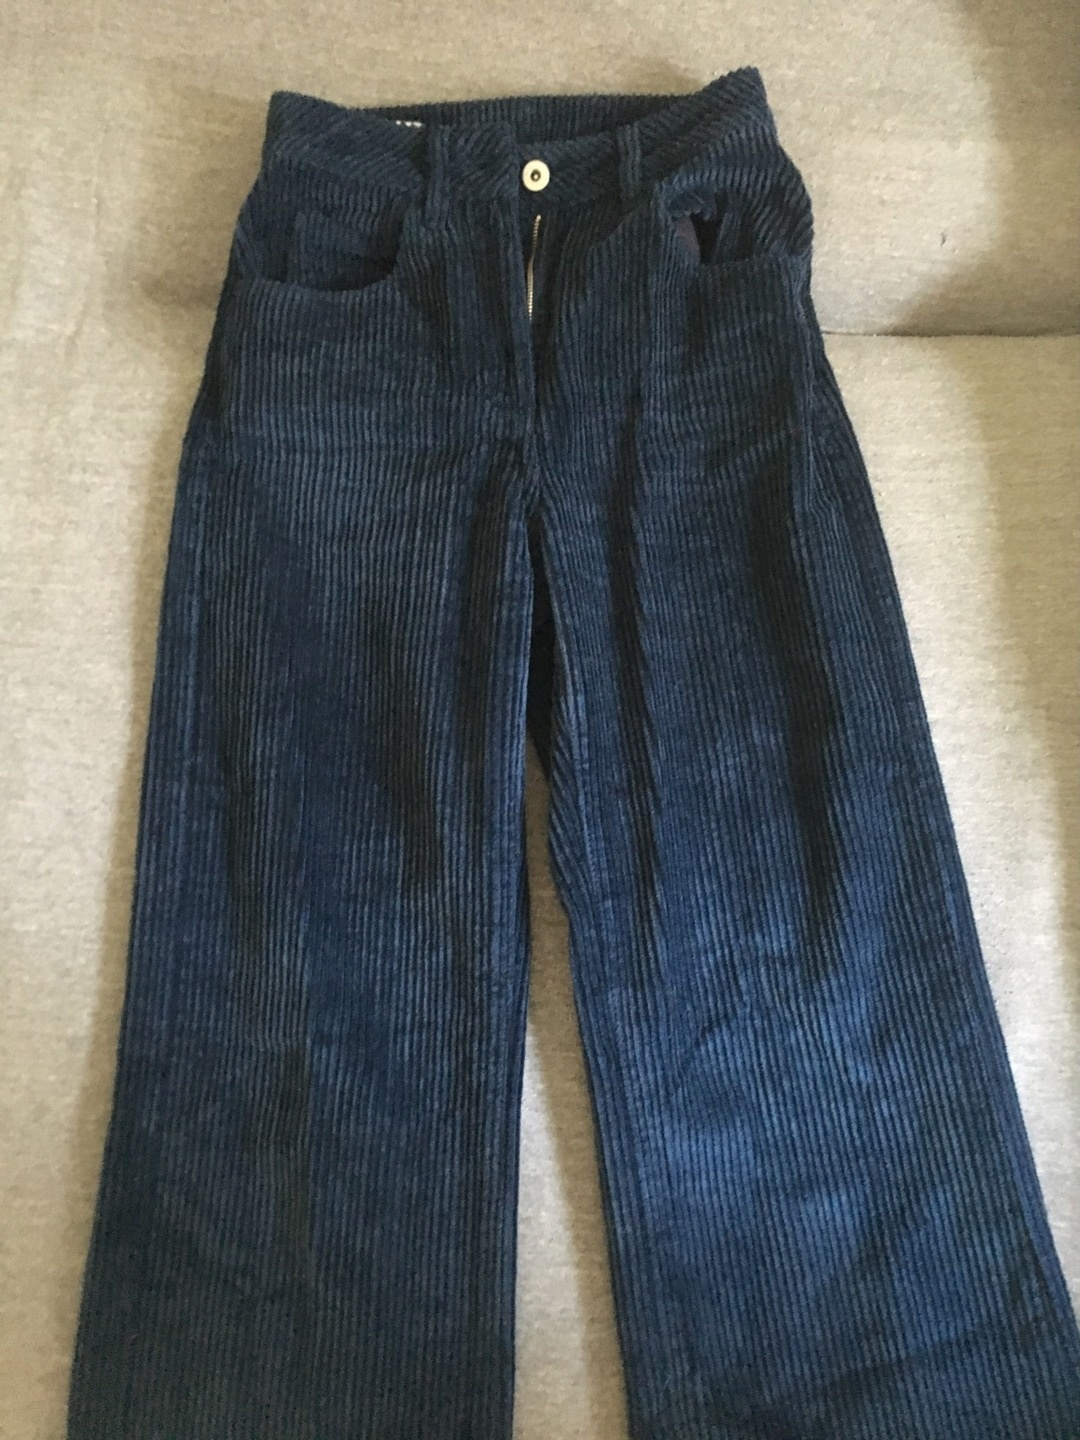 Women's trousers & jeans - COLLUSION photo 1